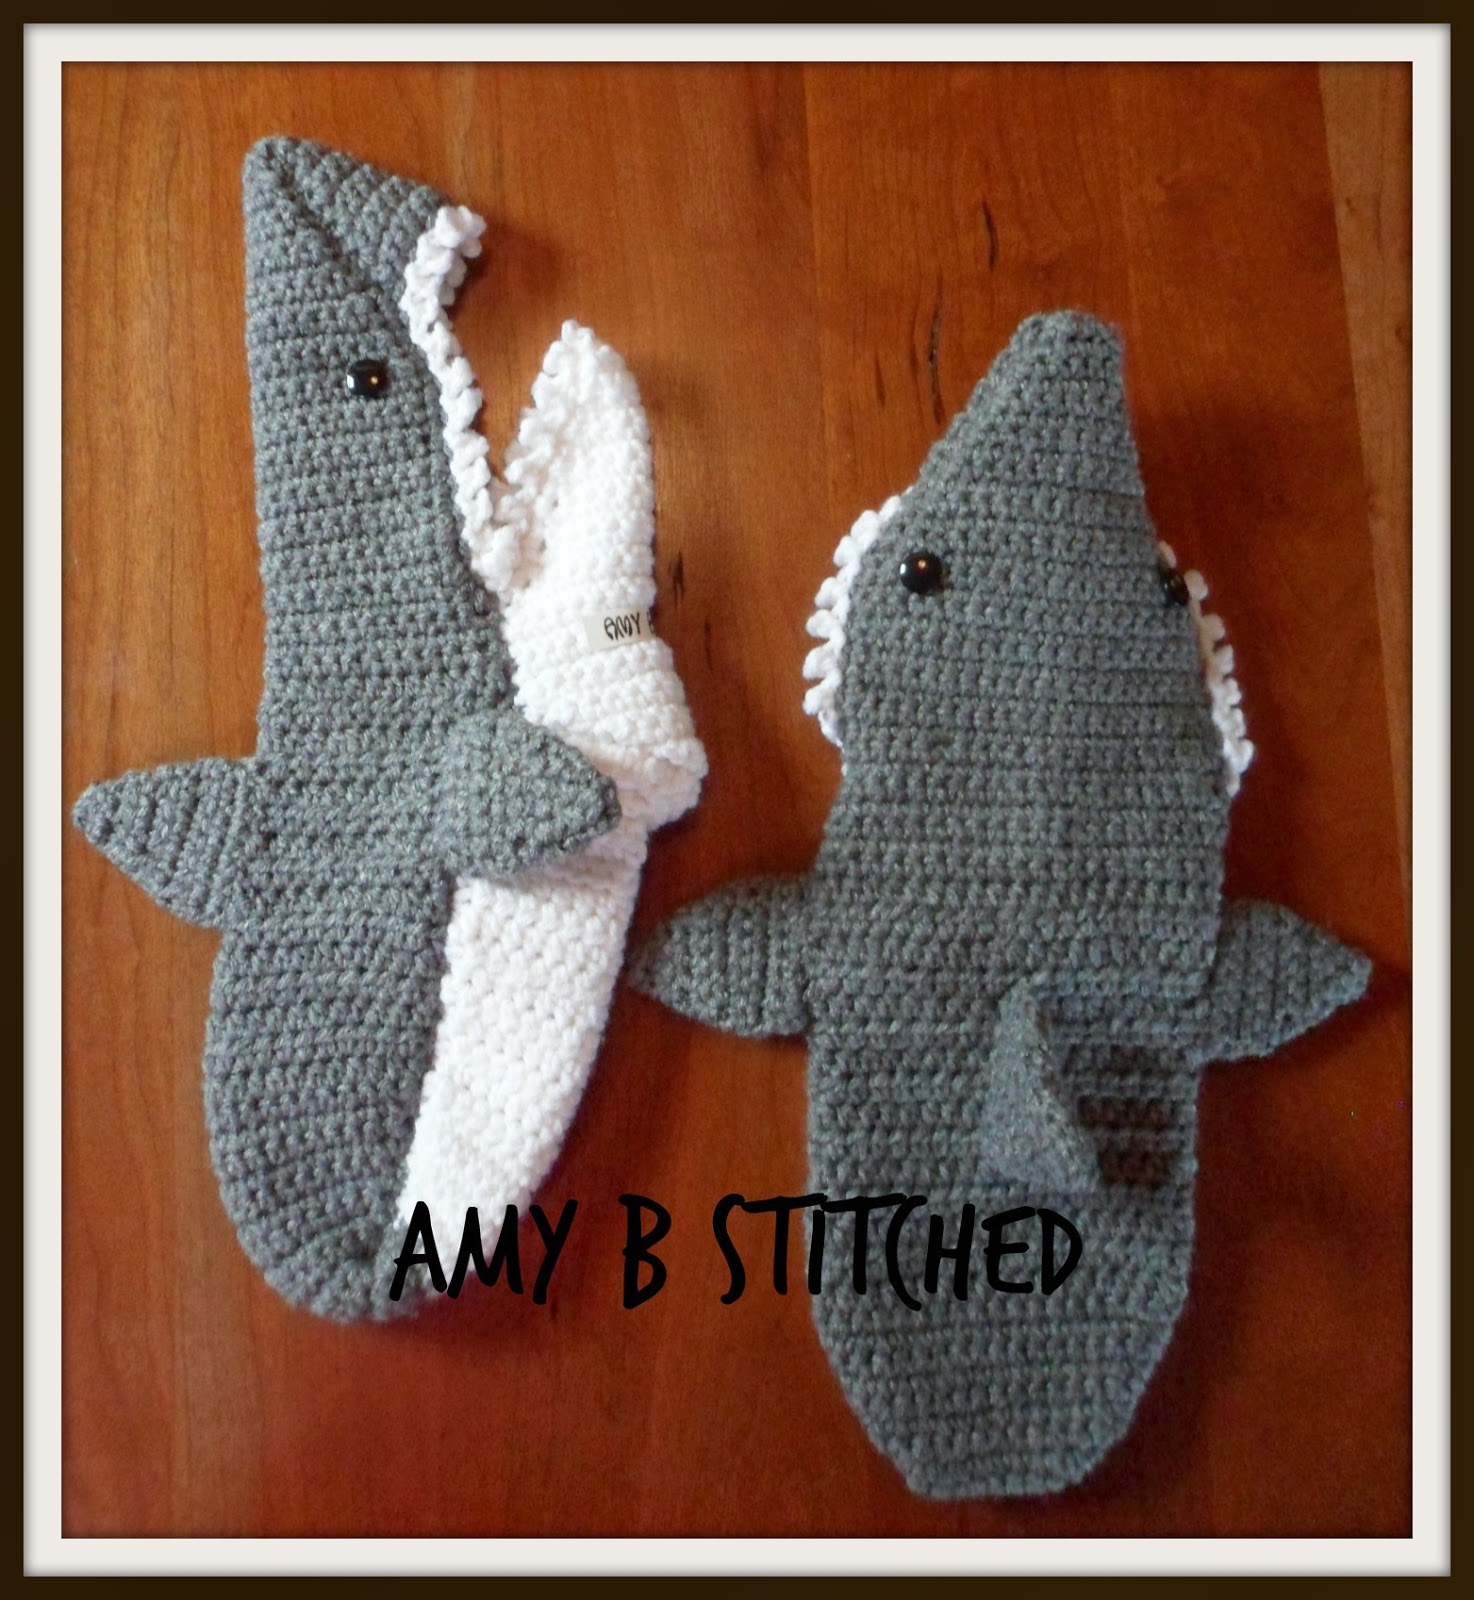 A Stitch At A Time for Amy B Stitched Crocheted Shark Slippers